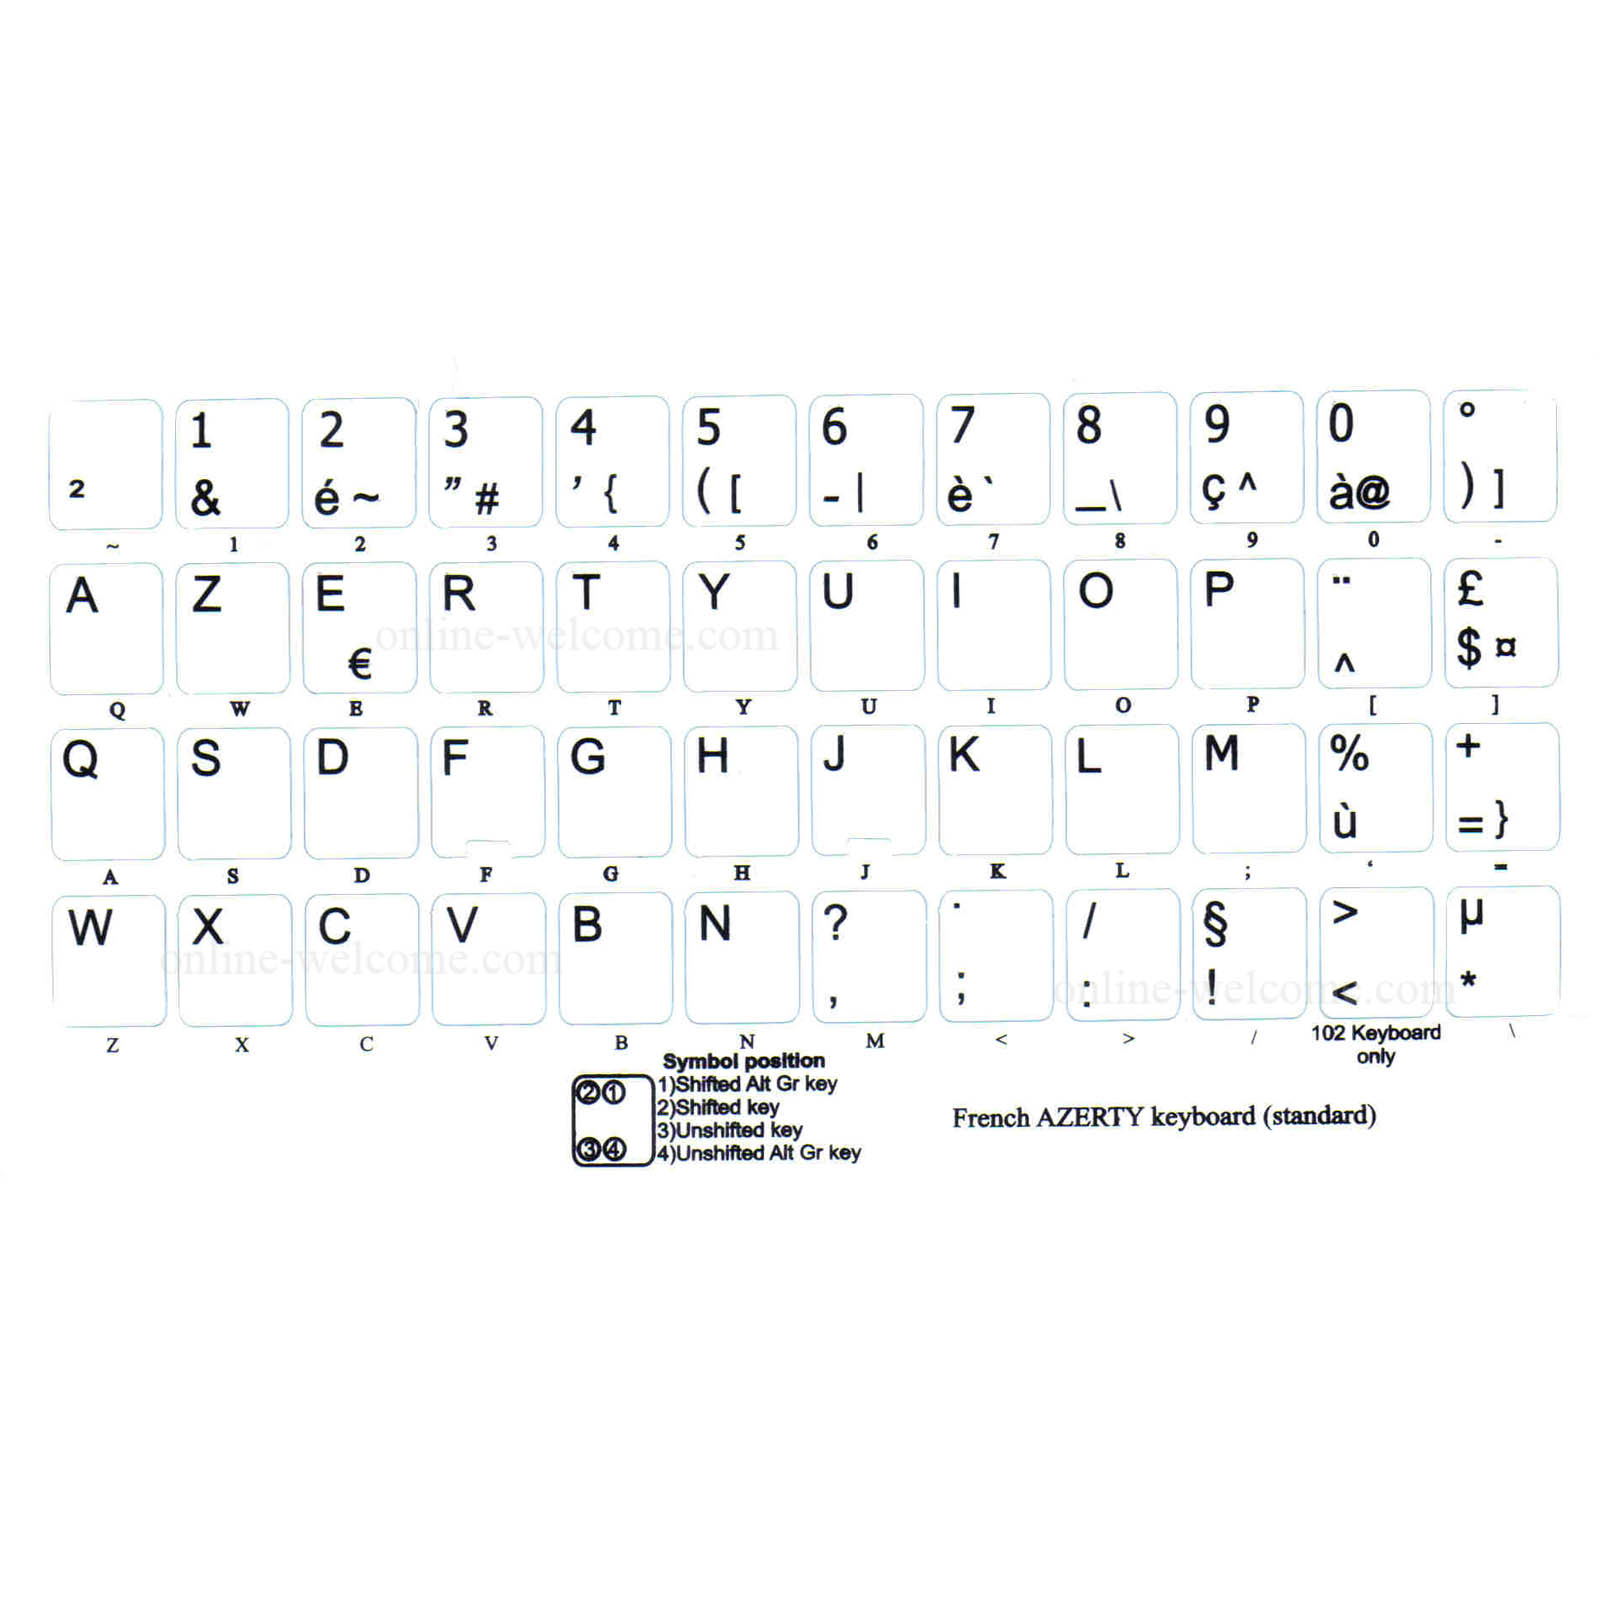 French azerty stickers keyboard black letters transparent background french azerty stickers black letters transparent background spiritdancerdesigns Choice Image